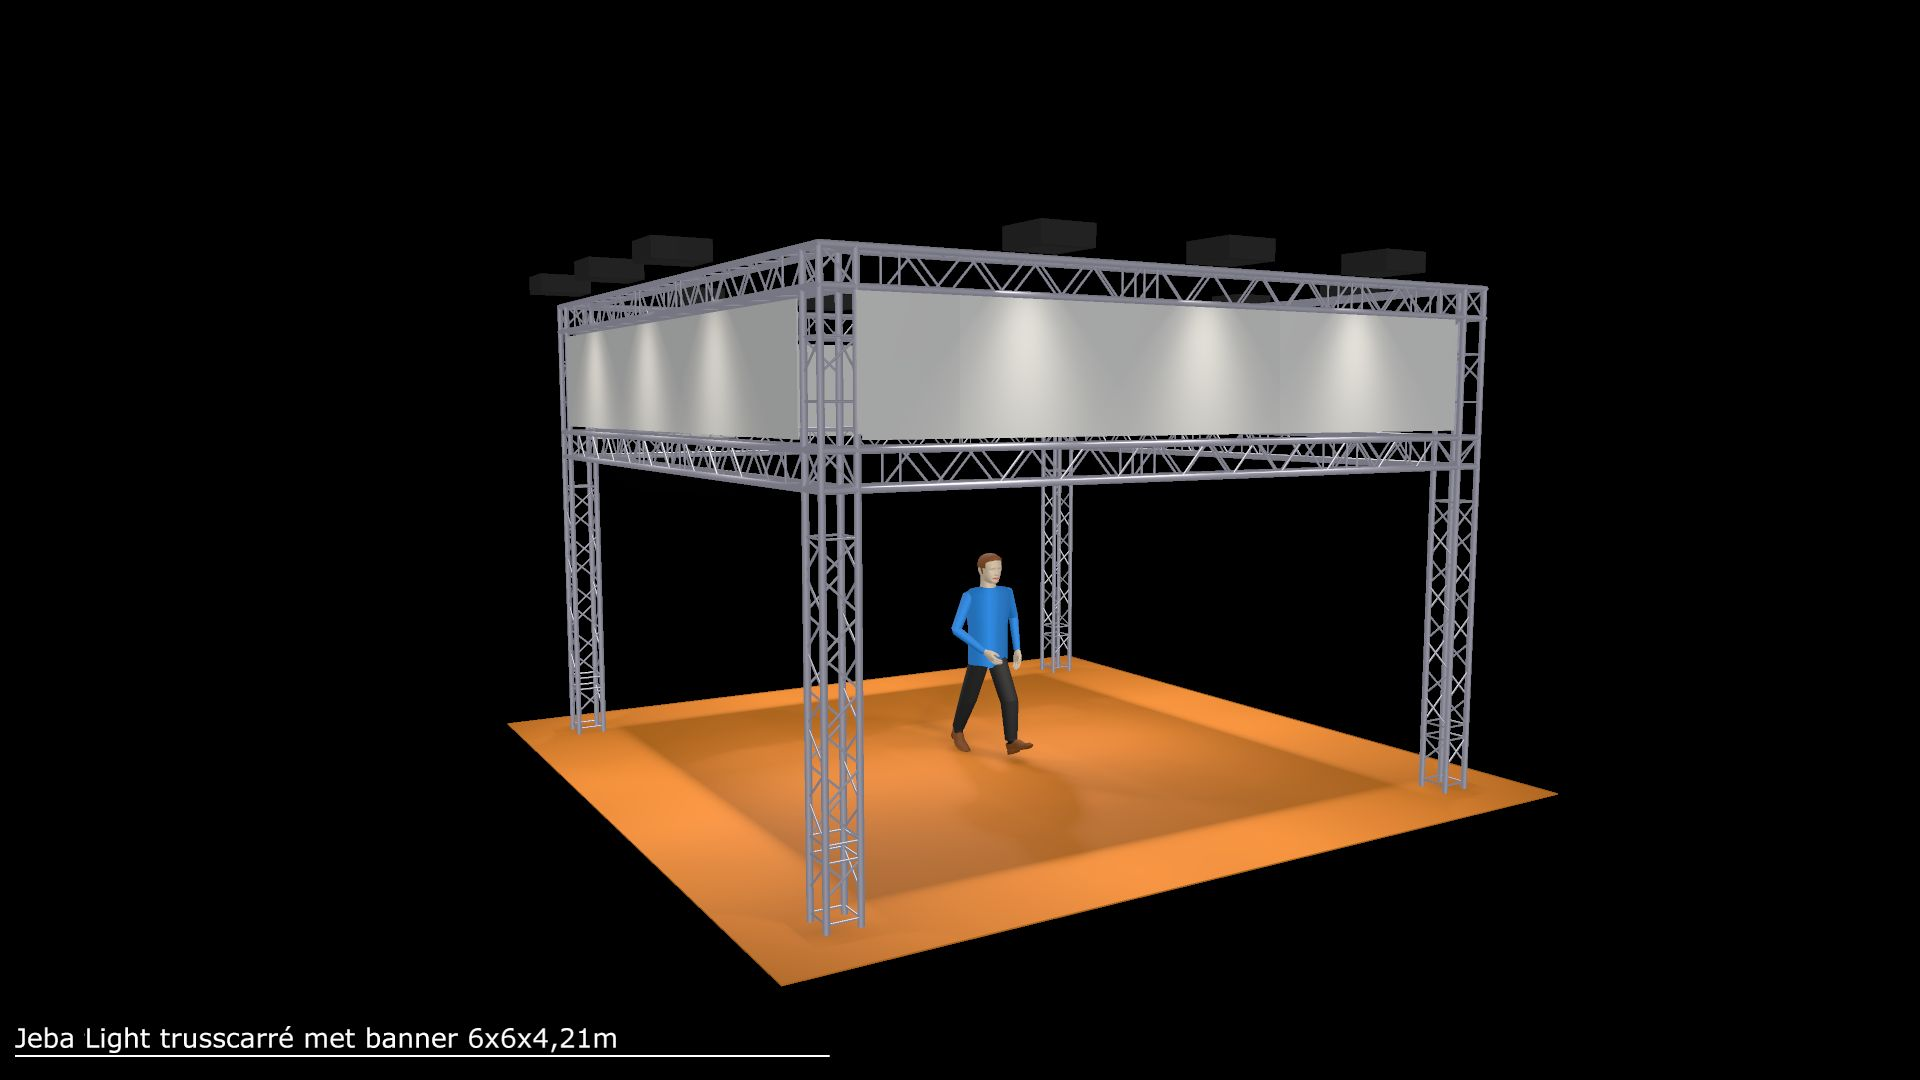 Truss carré 6x6x4,21m incl. ledverlichting